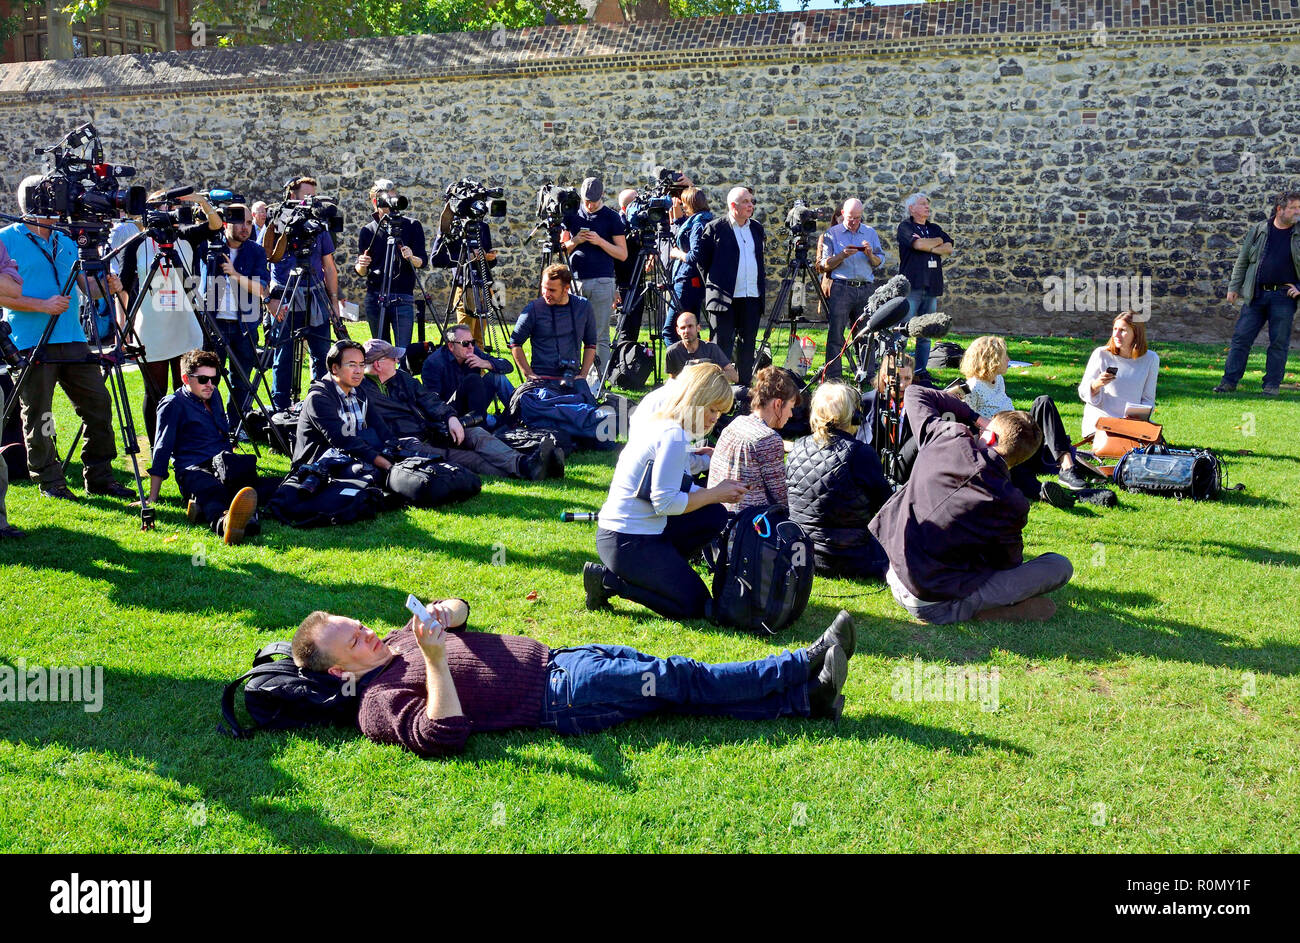 The Media waiting patiently on College Green, Westminster for a delayed press conference. London, England, UK. Stock Photo